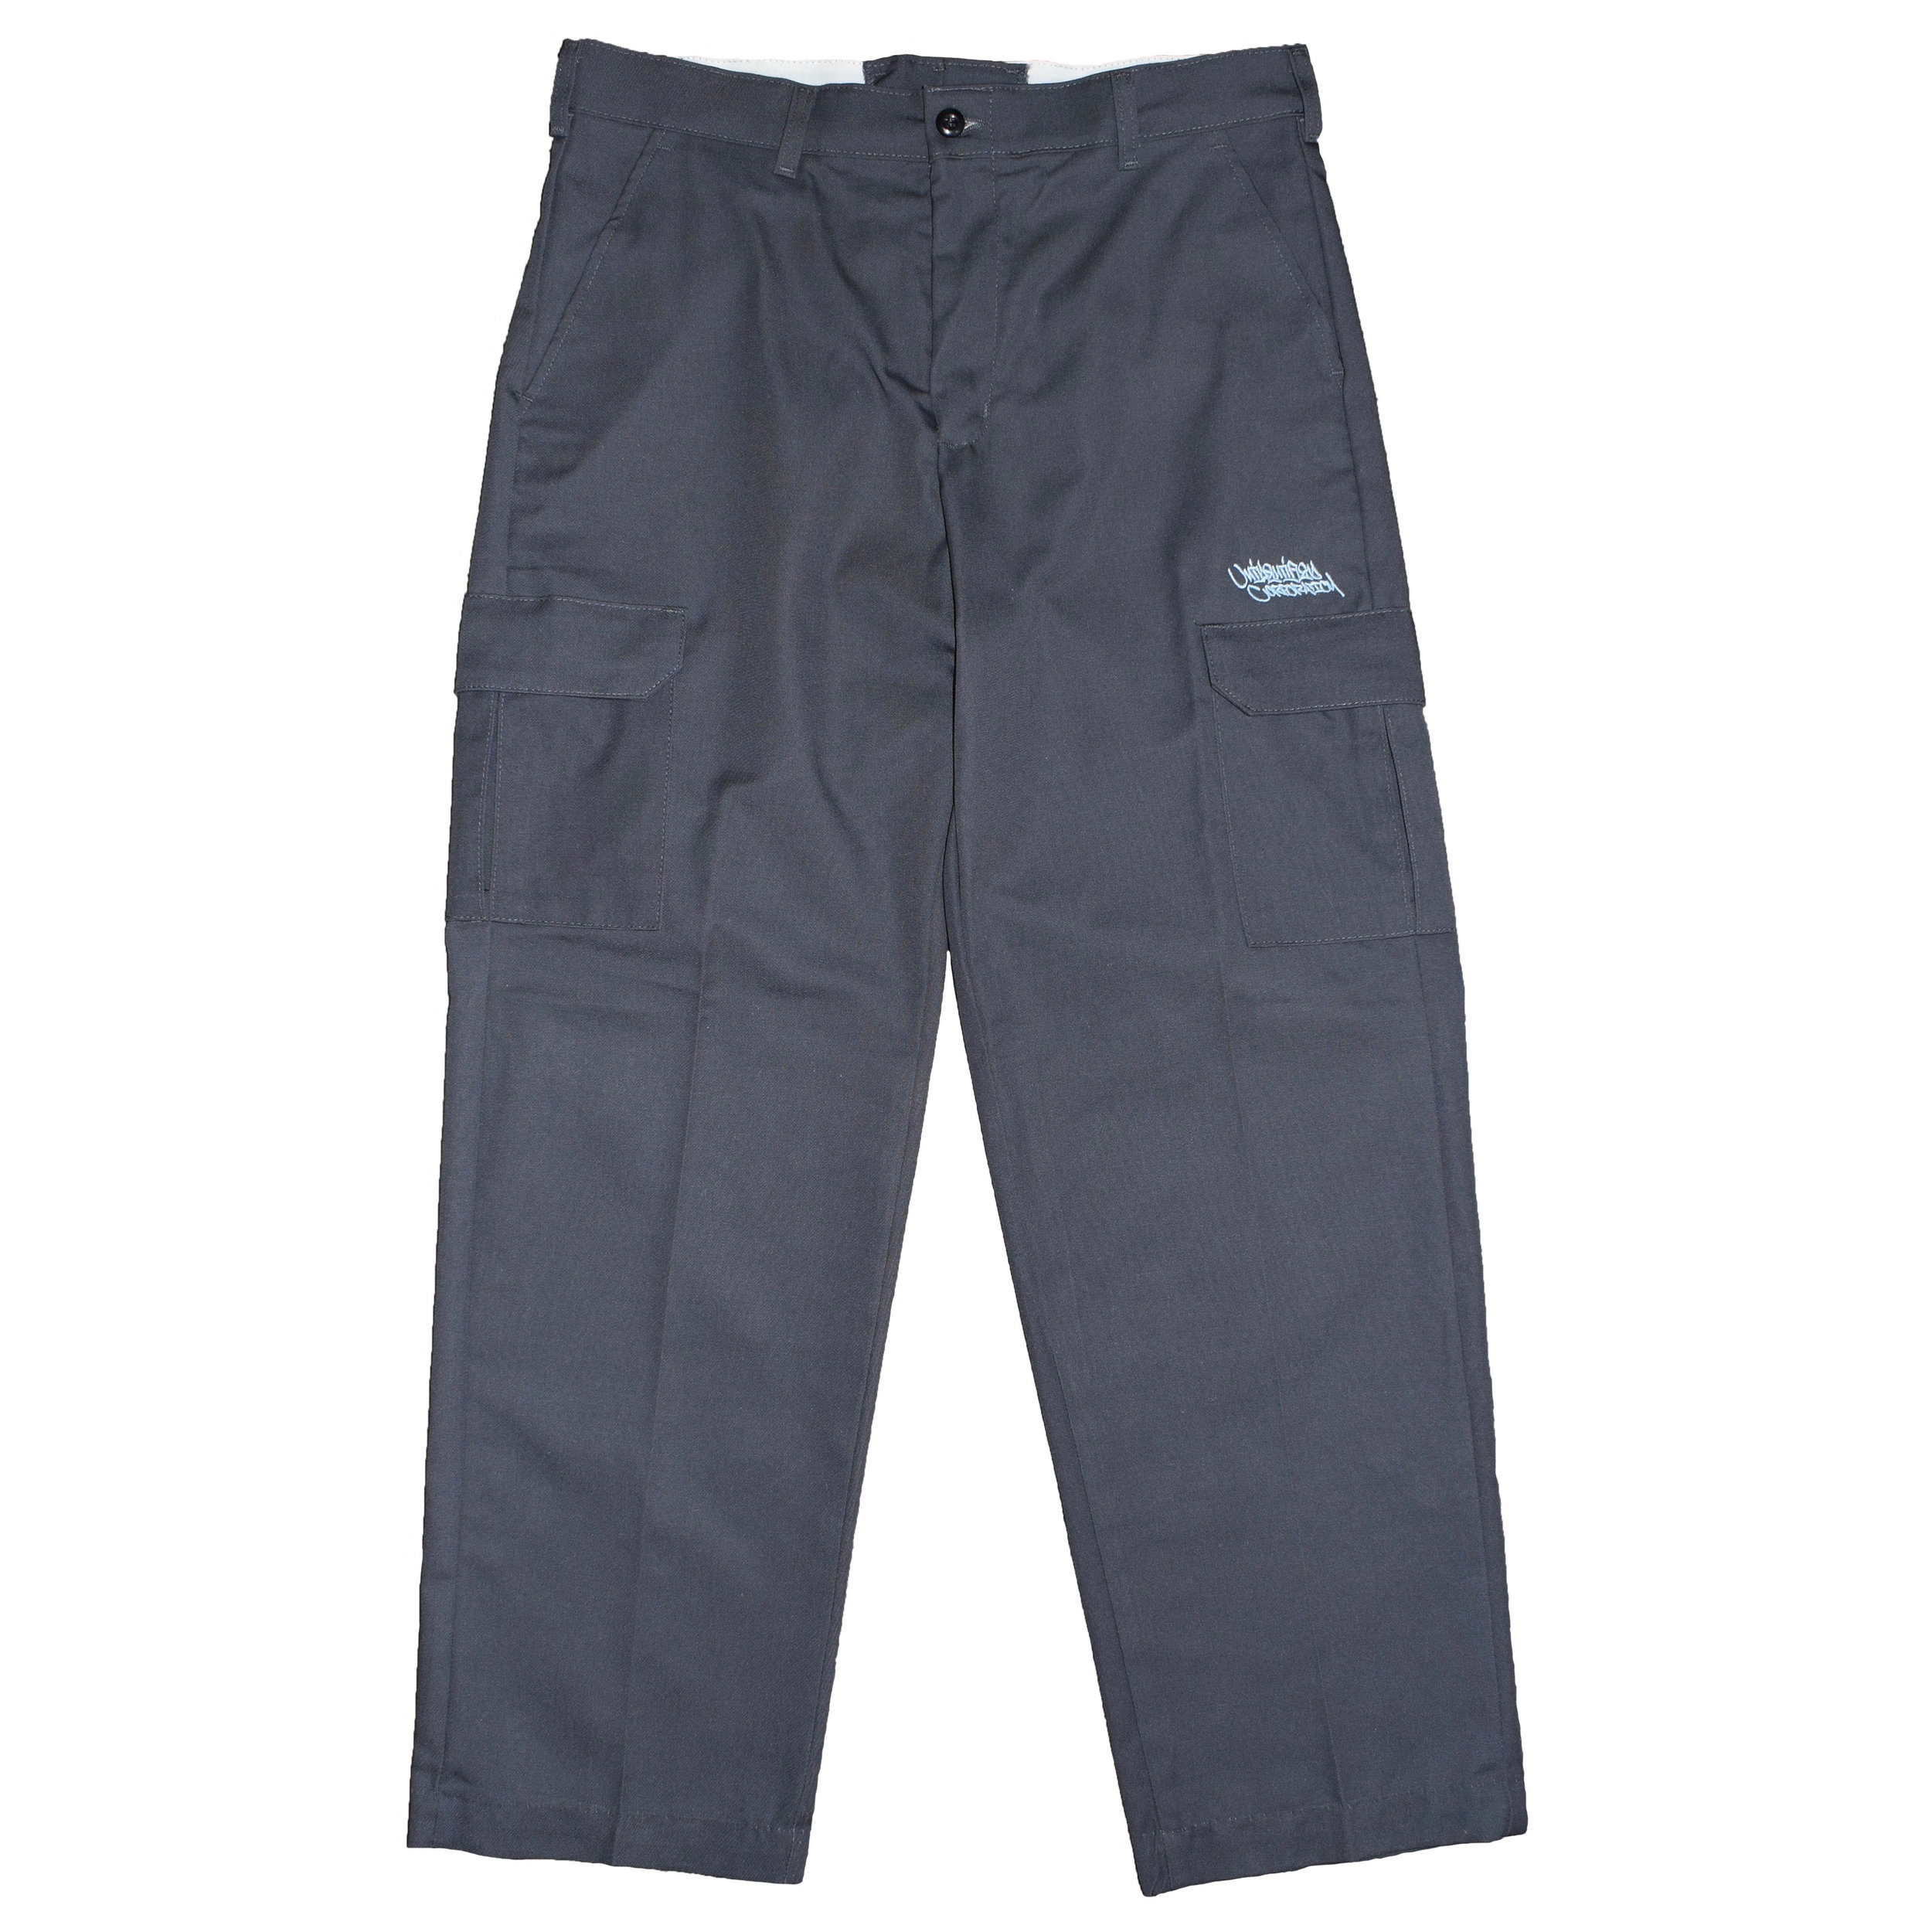 Cargo Pants Charcoal Square.jpg